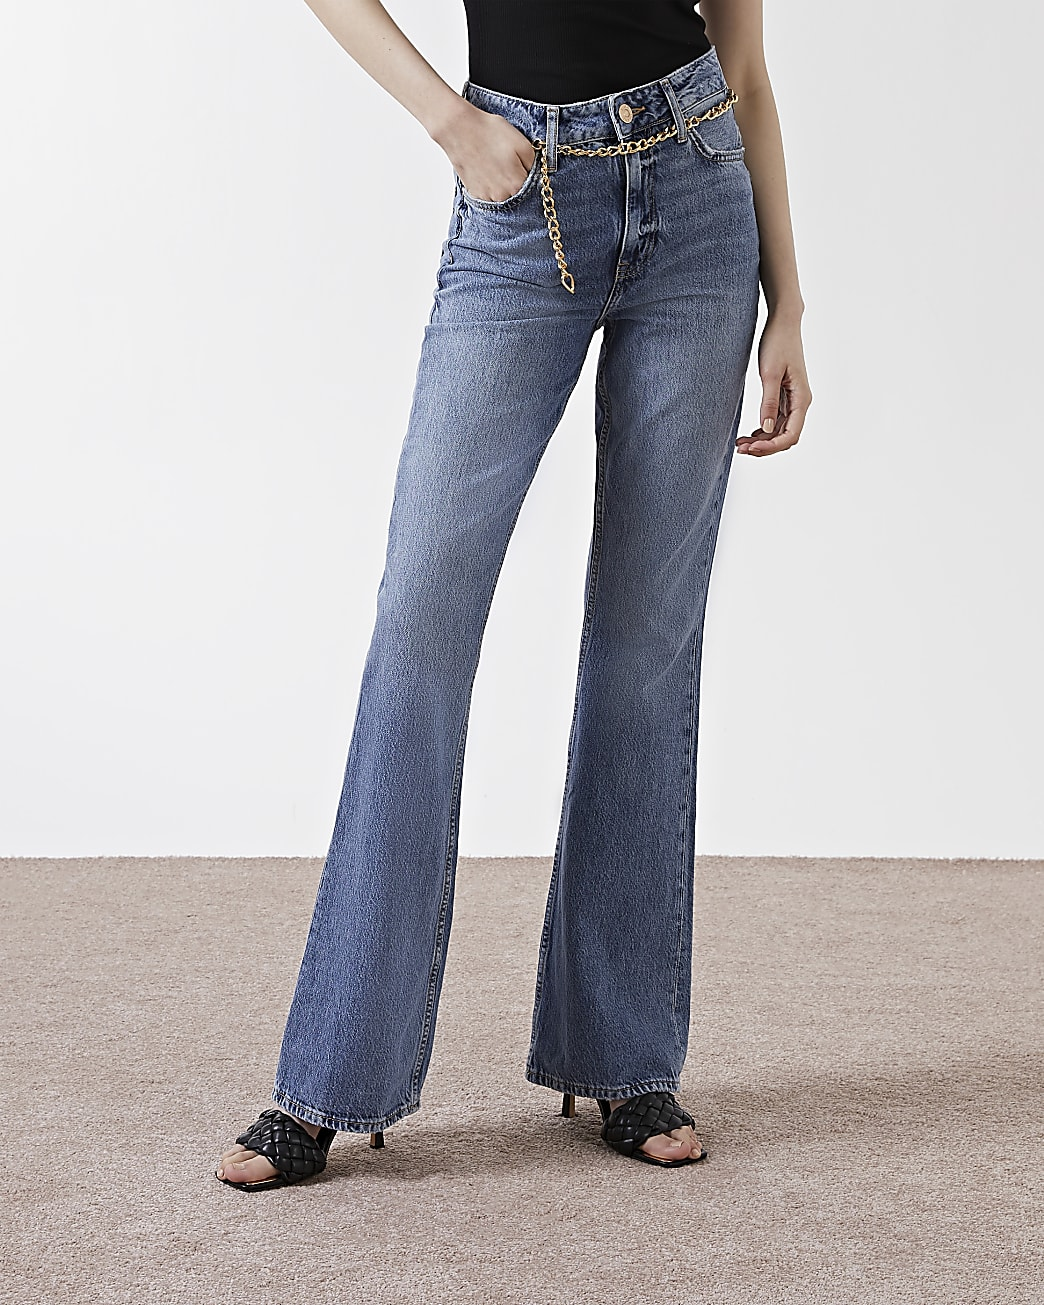 Blue high waisted flared jeans